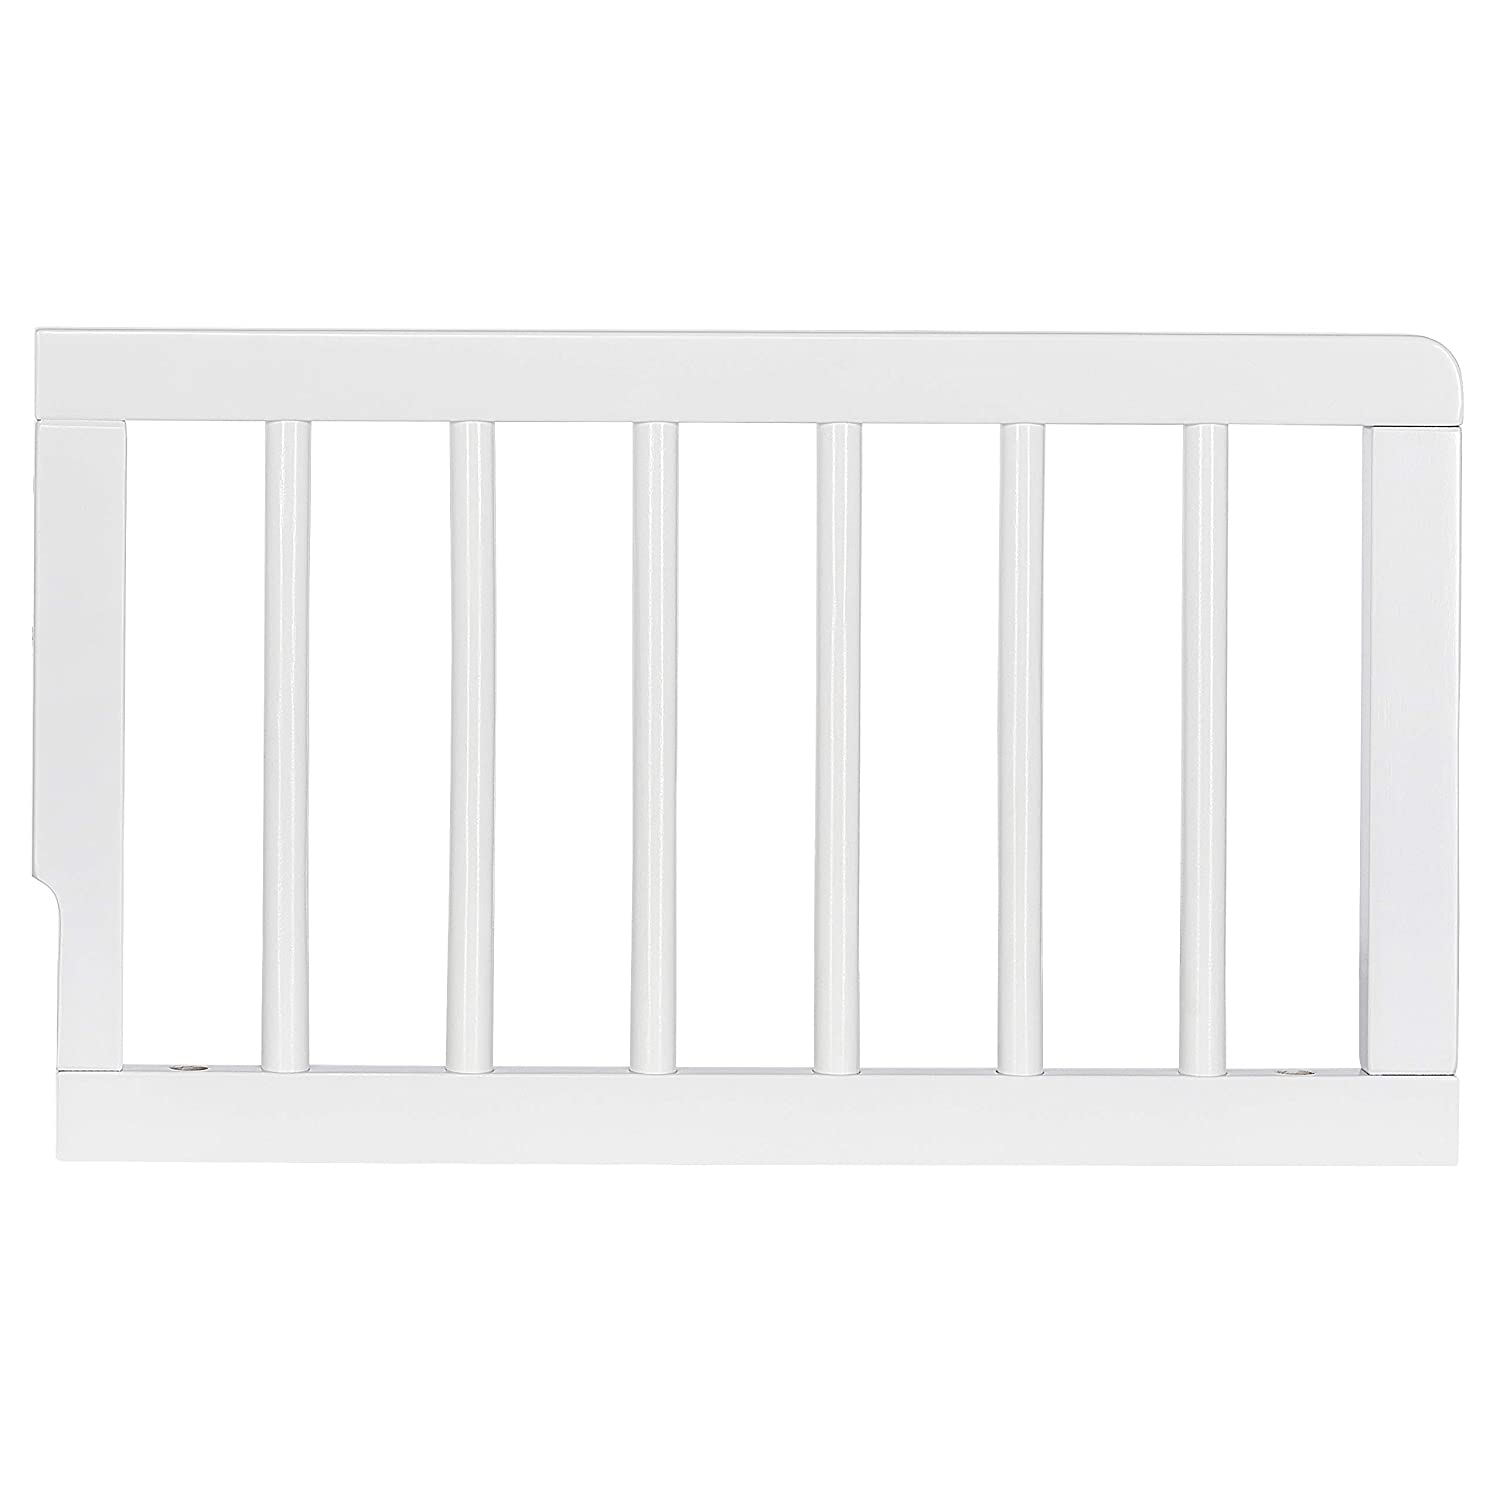 Dream On Me Sleepy Little Sloth, Moon Bear Reaching for The Stars Toddler Rail I Rounded Spindles I Mid- Century Meets Modern